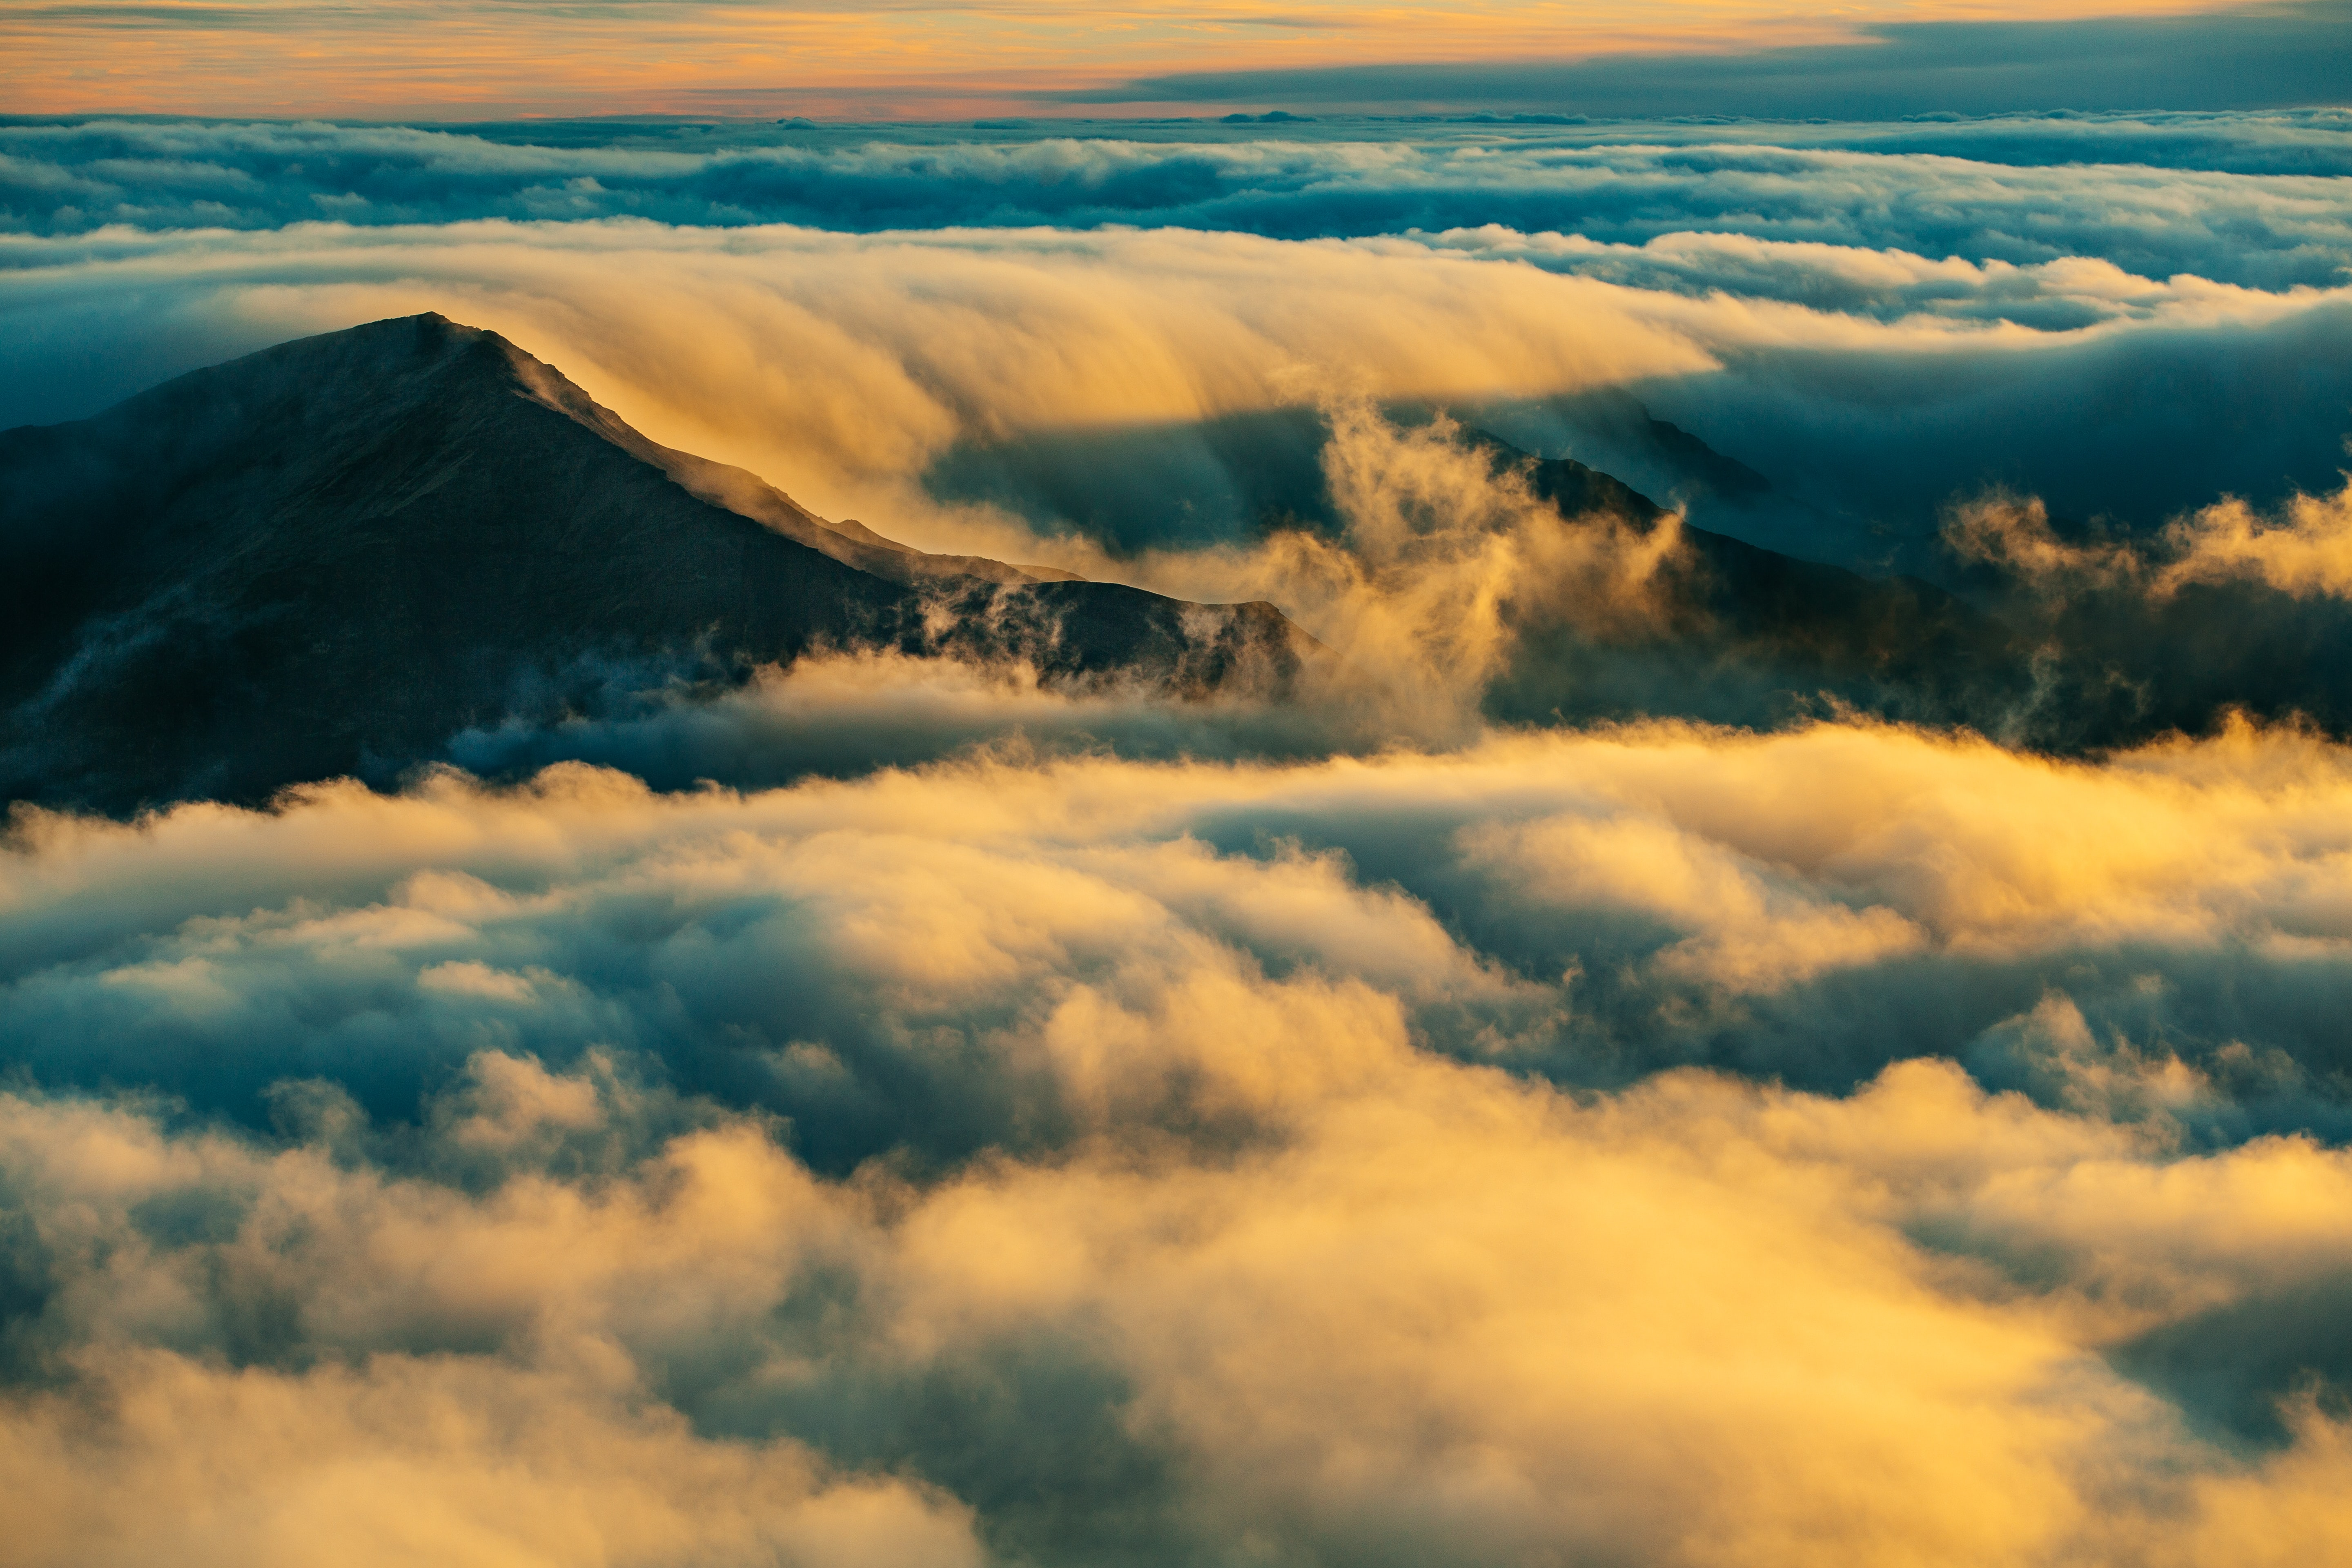 Yellow and blue clouds engulf a mountain during golden hour at Haleakala Summit Parking